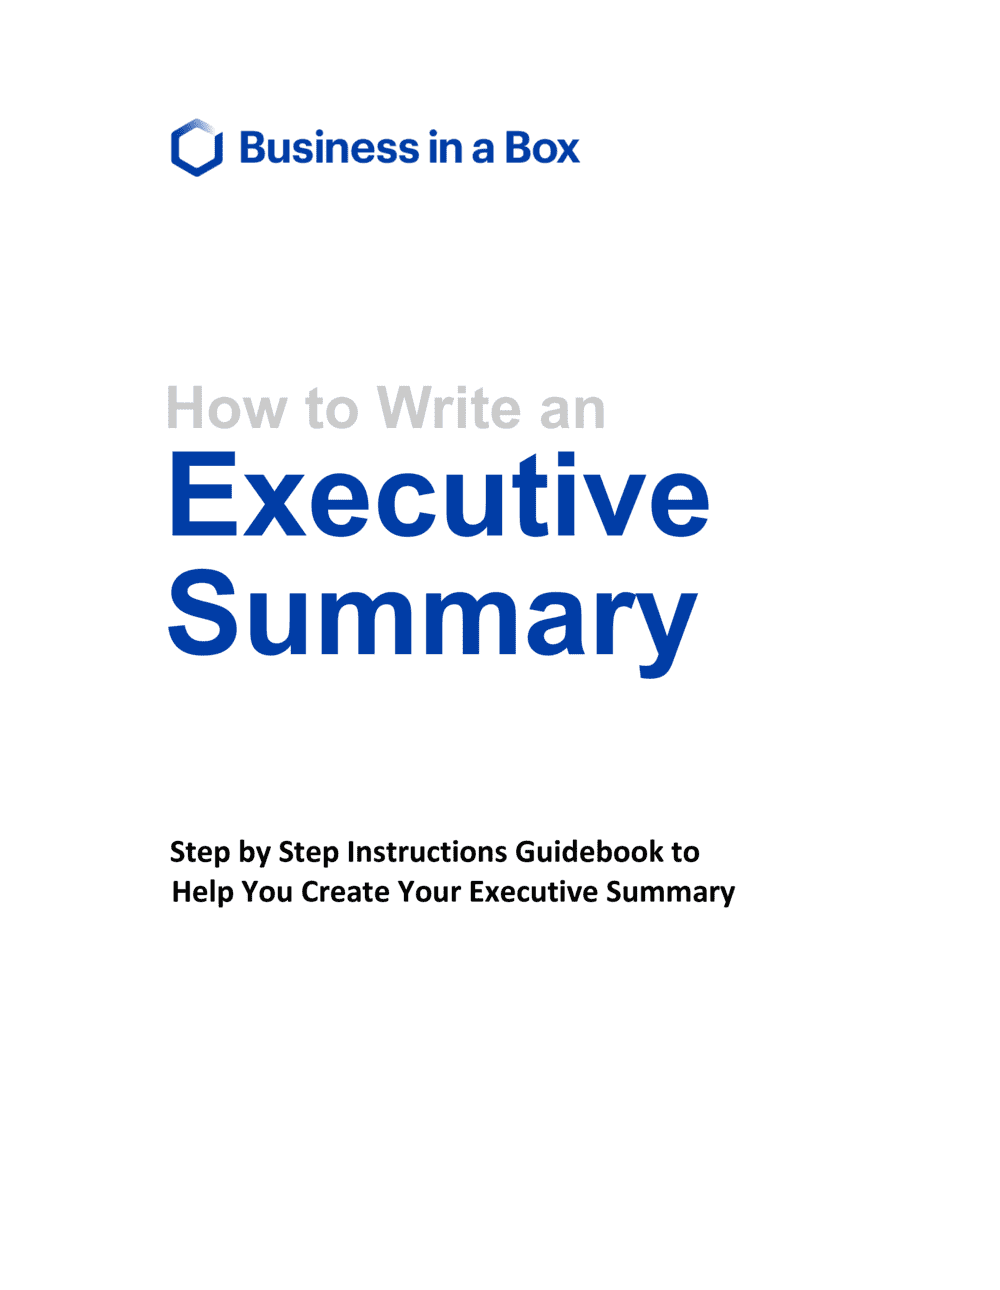 Business-in-a-Box's How to write an Executive Summary Template